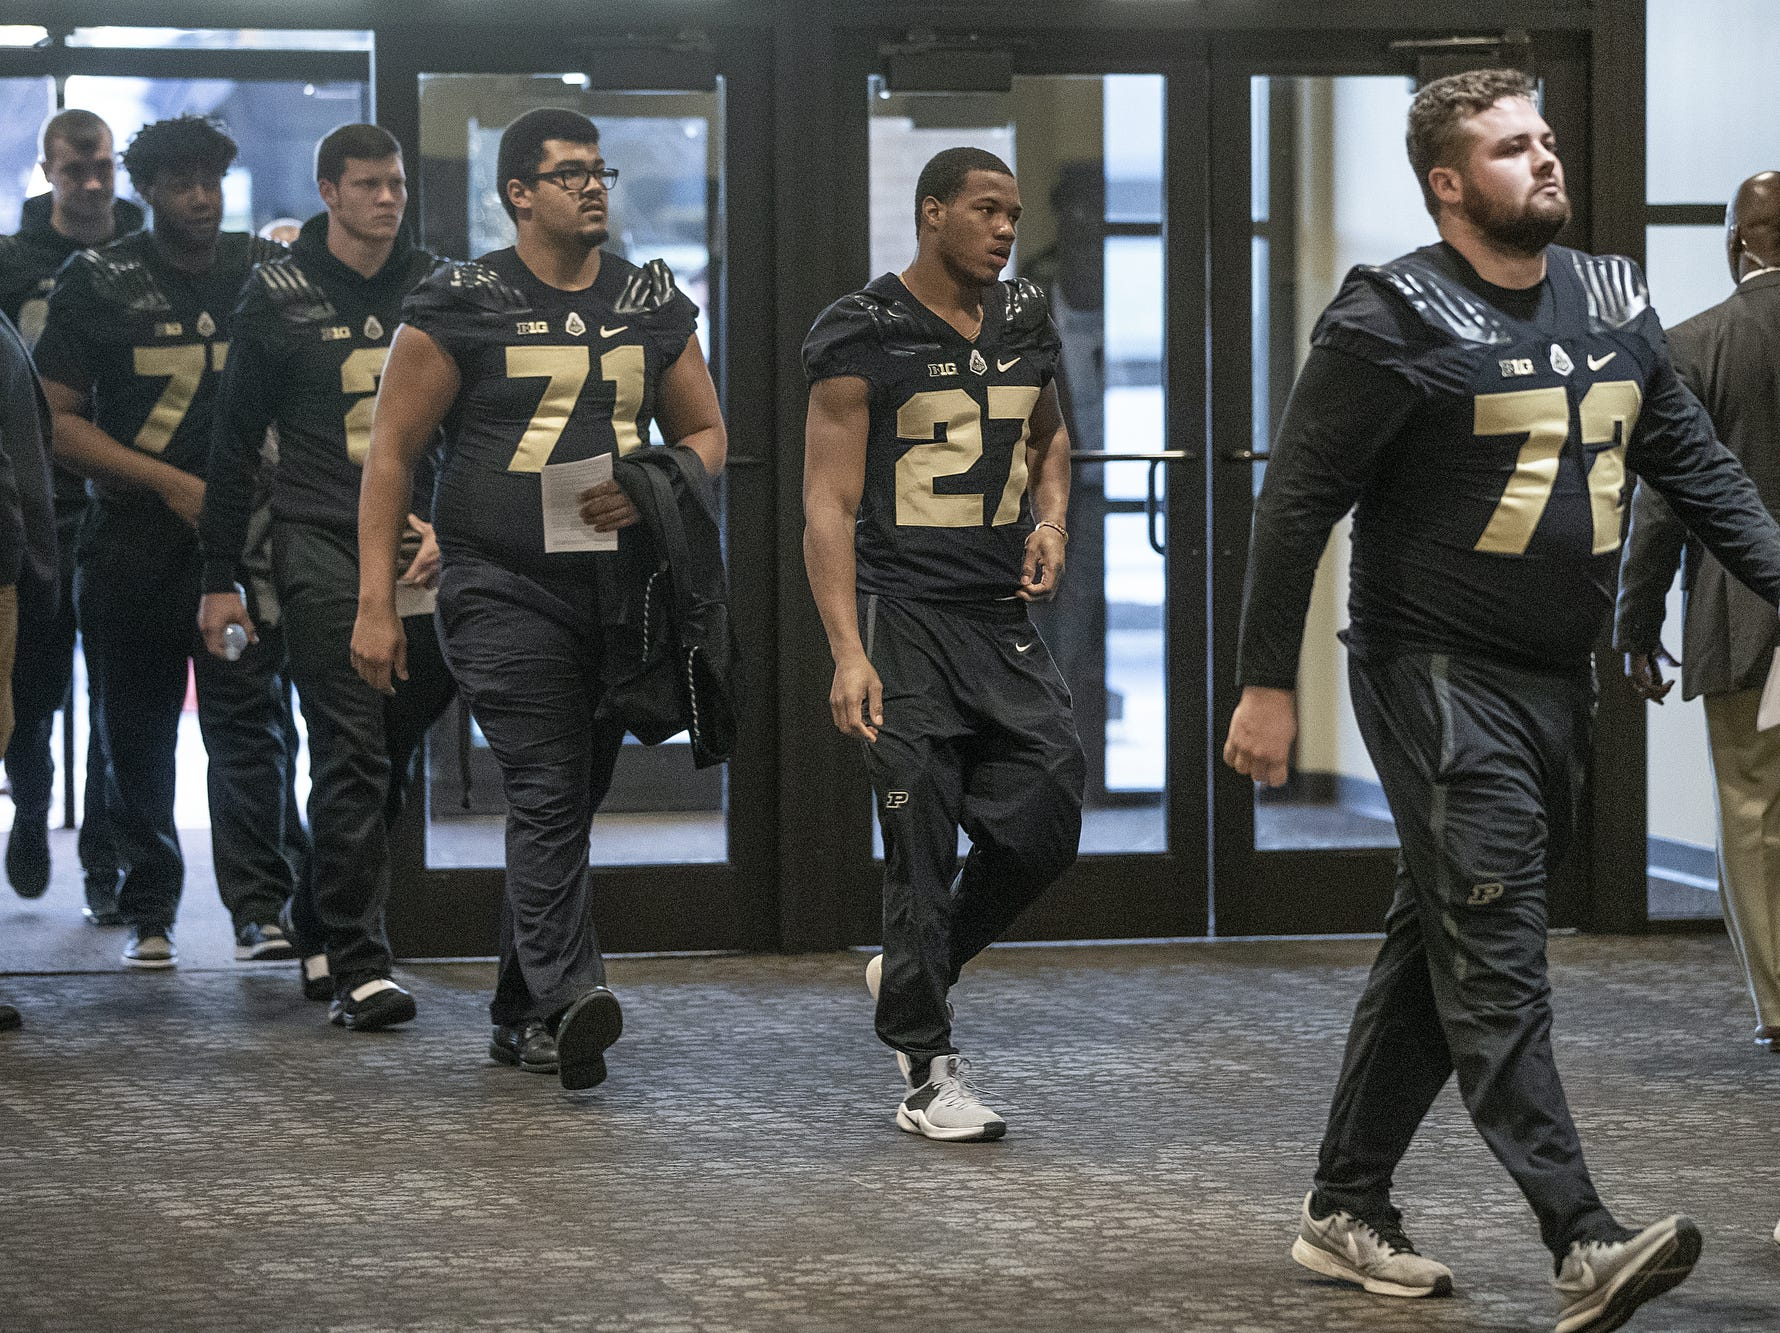 Members of the Purdue football team enter the funeral for former Purdue student and superfan Tyler Trent at College Park Church in Indianapolis, Tuesday, Jan. 8, 2019. The 20-year-old died of a rare form of bone cancer on Jan. 1, 2019.